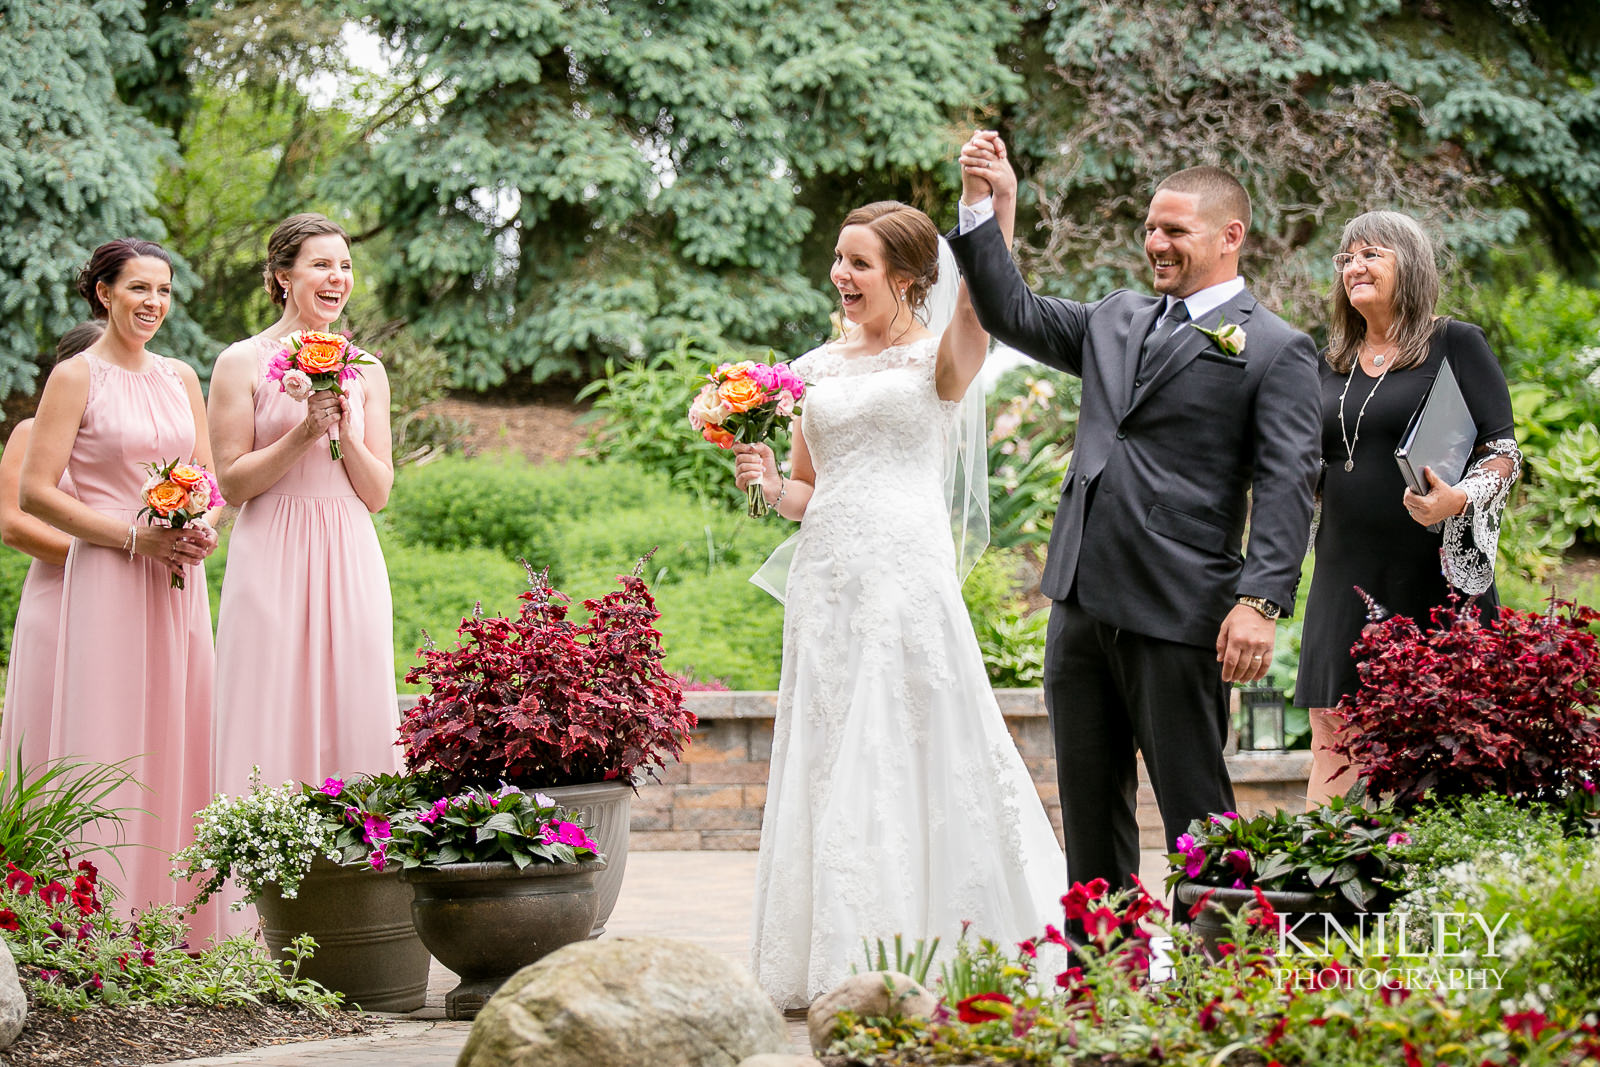 060 - Ravenwood Golf Club wedding pictures - Rochester NY - Kniley Photography - IMG_9130.jpg